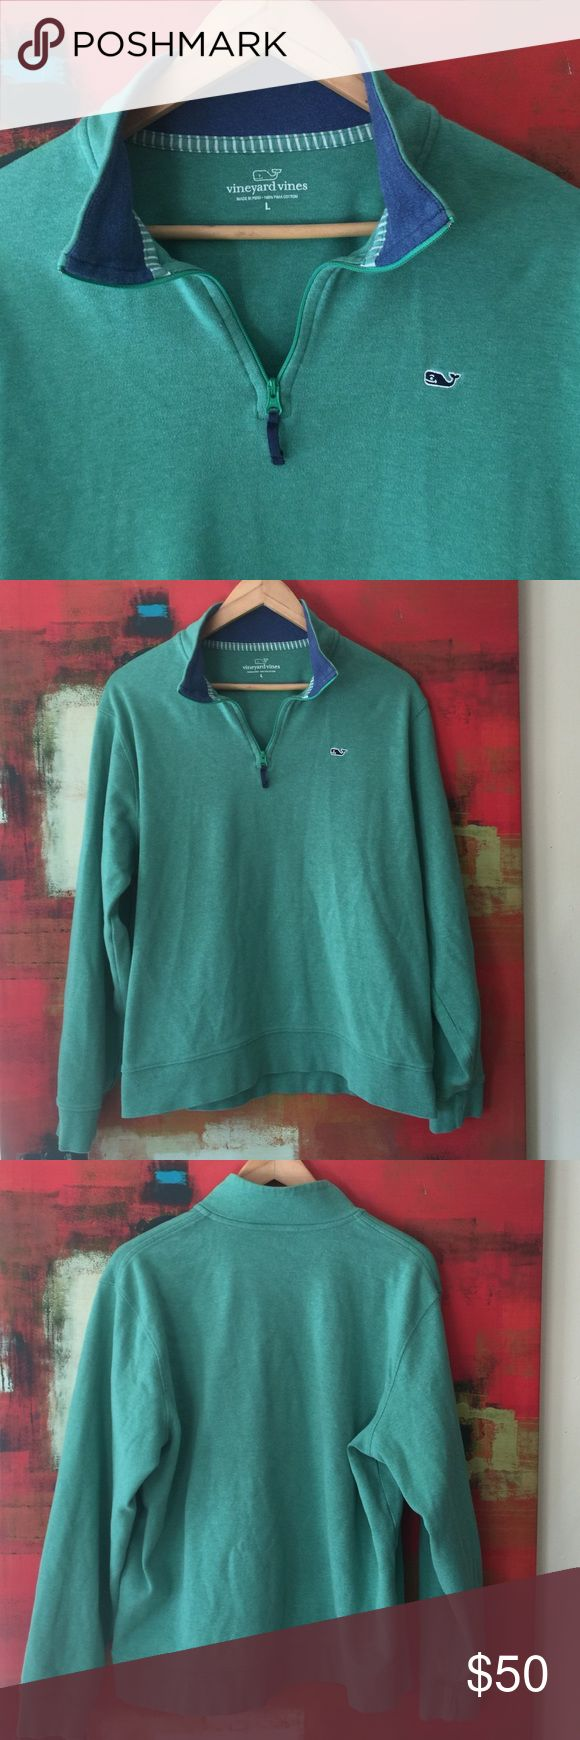 Vineyard Vines Pullover Starboard green quarter zip-up embodies the preppy, playful Vineyard Vines vibe and the coziness of a sweatshirt. Embroidered whale logo, ribbed cuffs and bottom hem and contrasting blue interior collar make this all Pina cotton staple something you'll reach for time and again. Please see two small dots in photo 4 (pencil marks?) near front bottom hem - light and barely noticeable but I wanted to point them out. Vineyard Vines Sweaters Zip Up